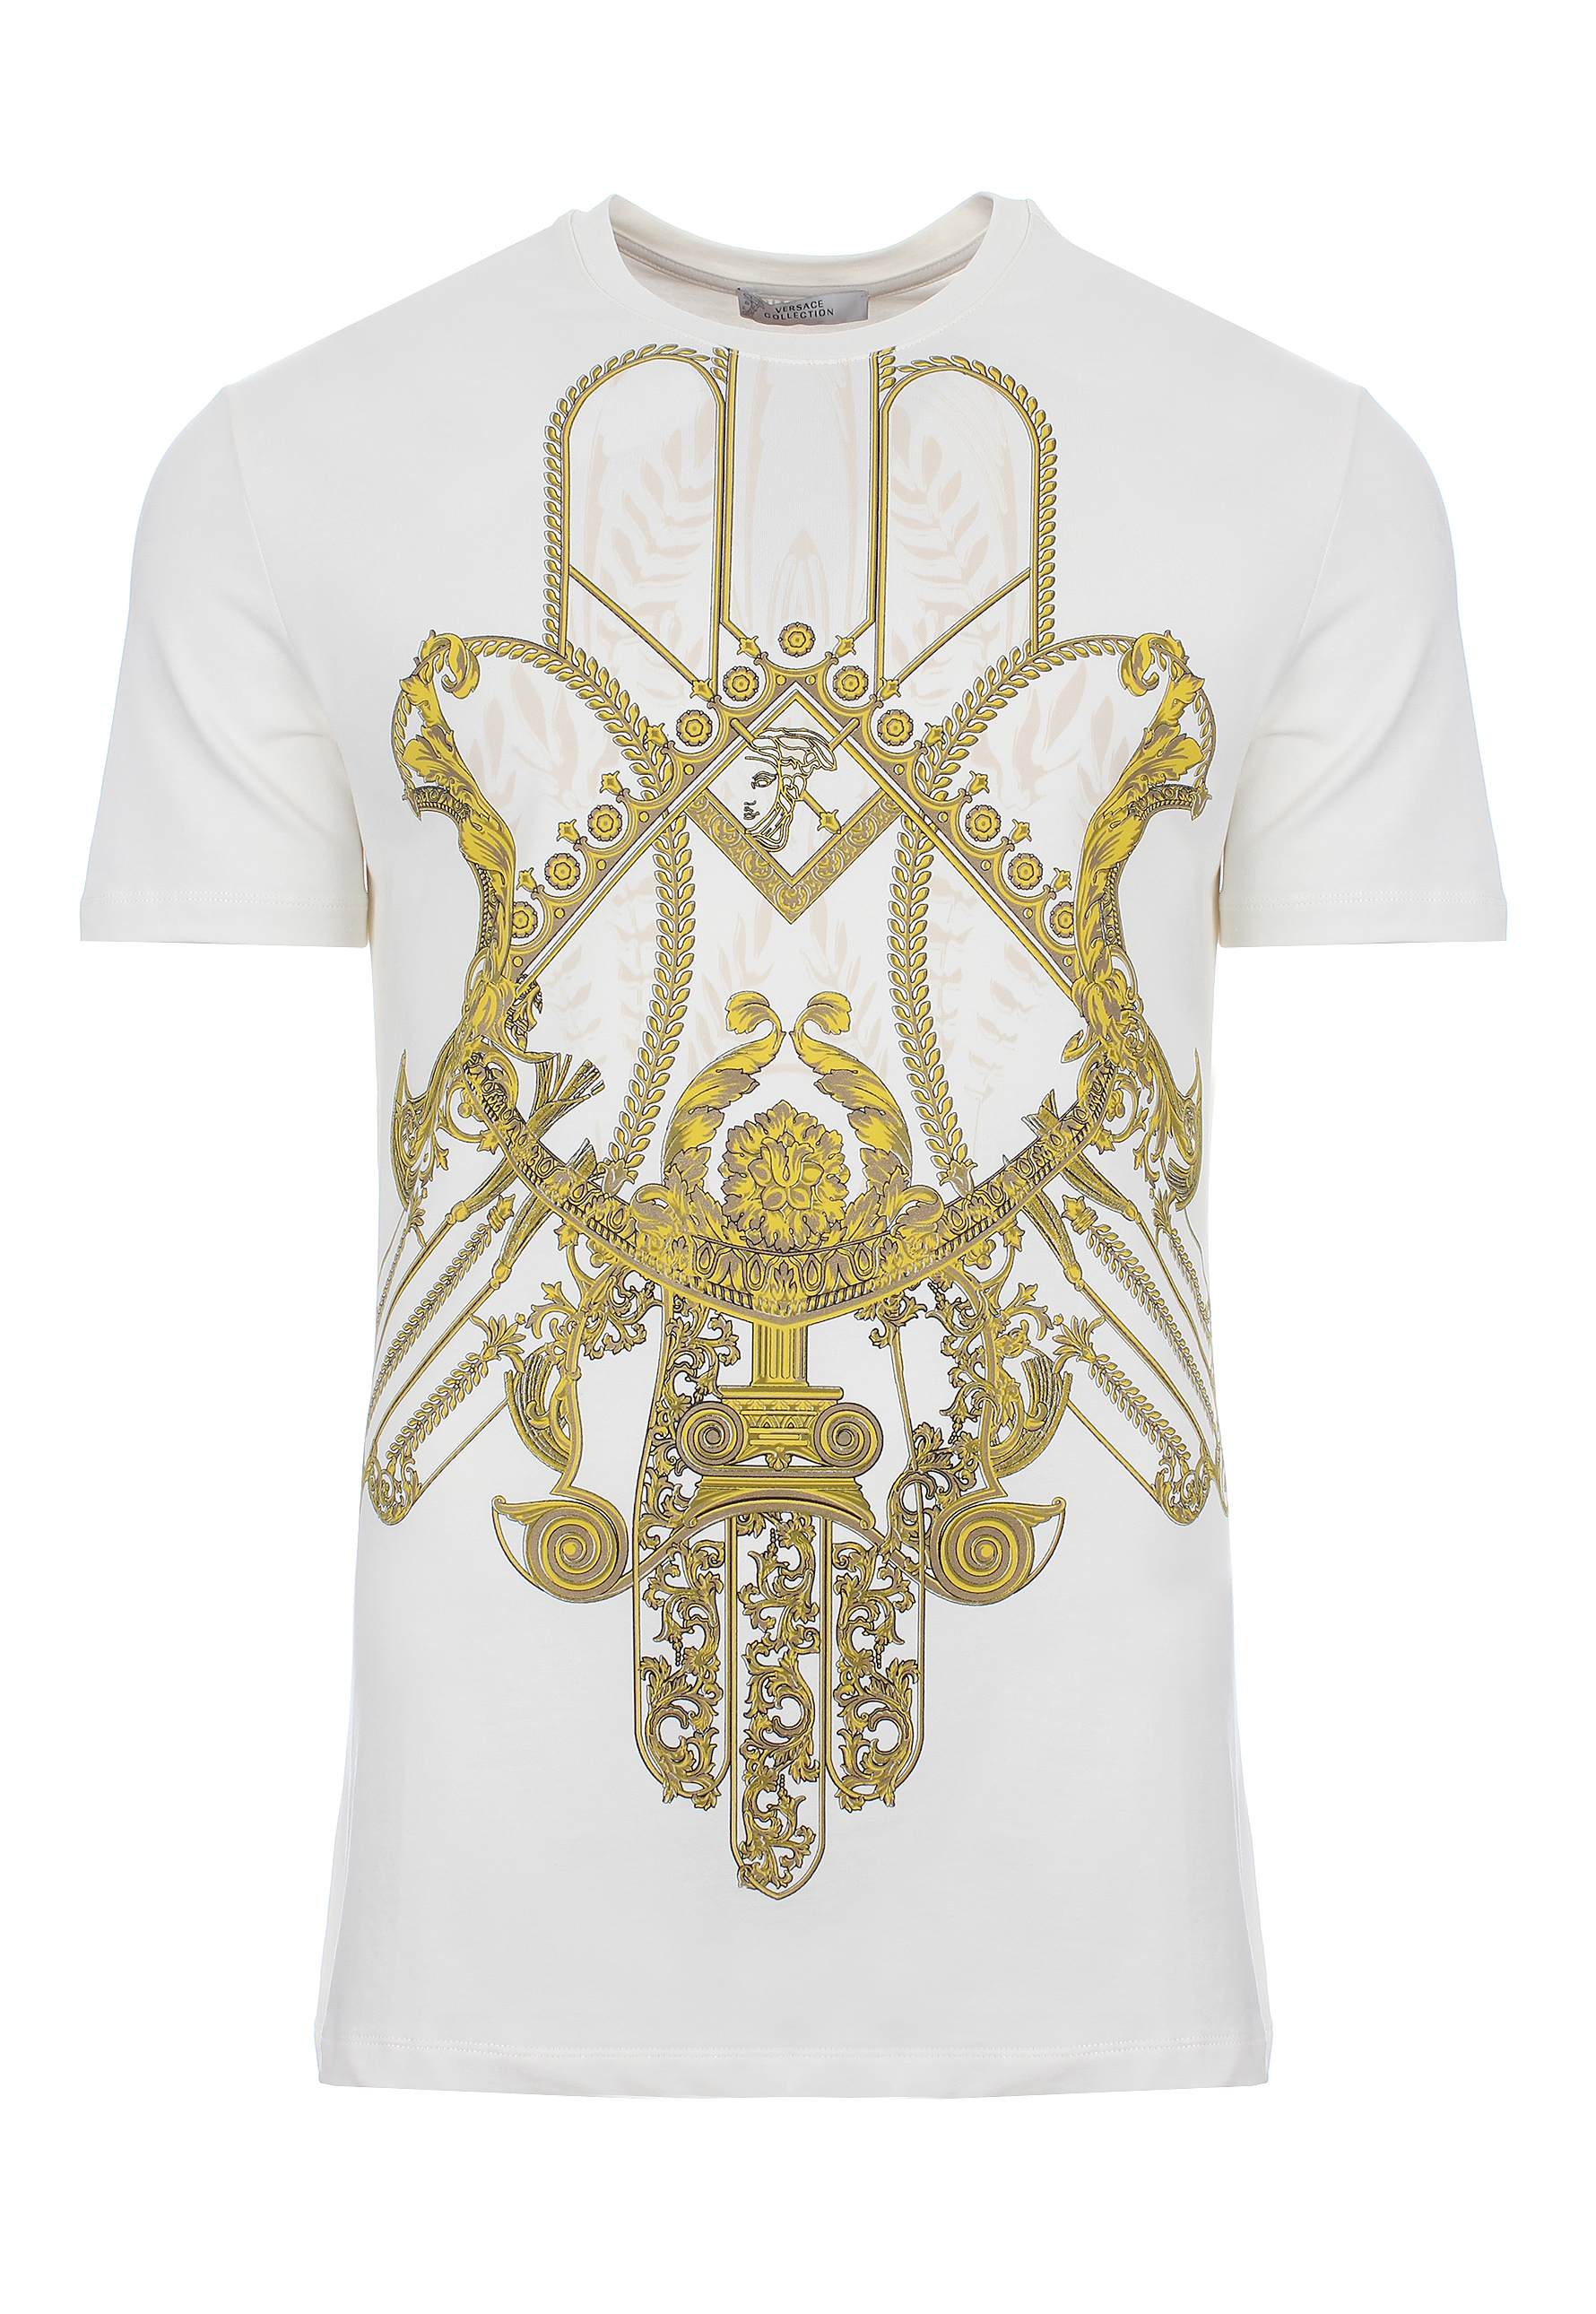 Versace Hamsa Hand Print T-shirt Off White/gold in Metallic for ...